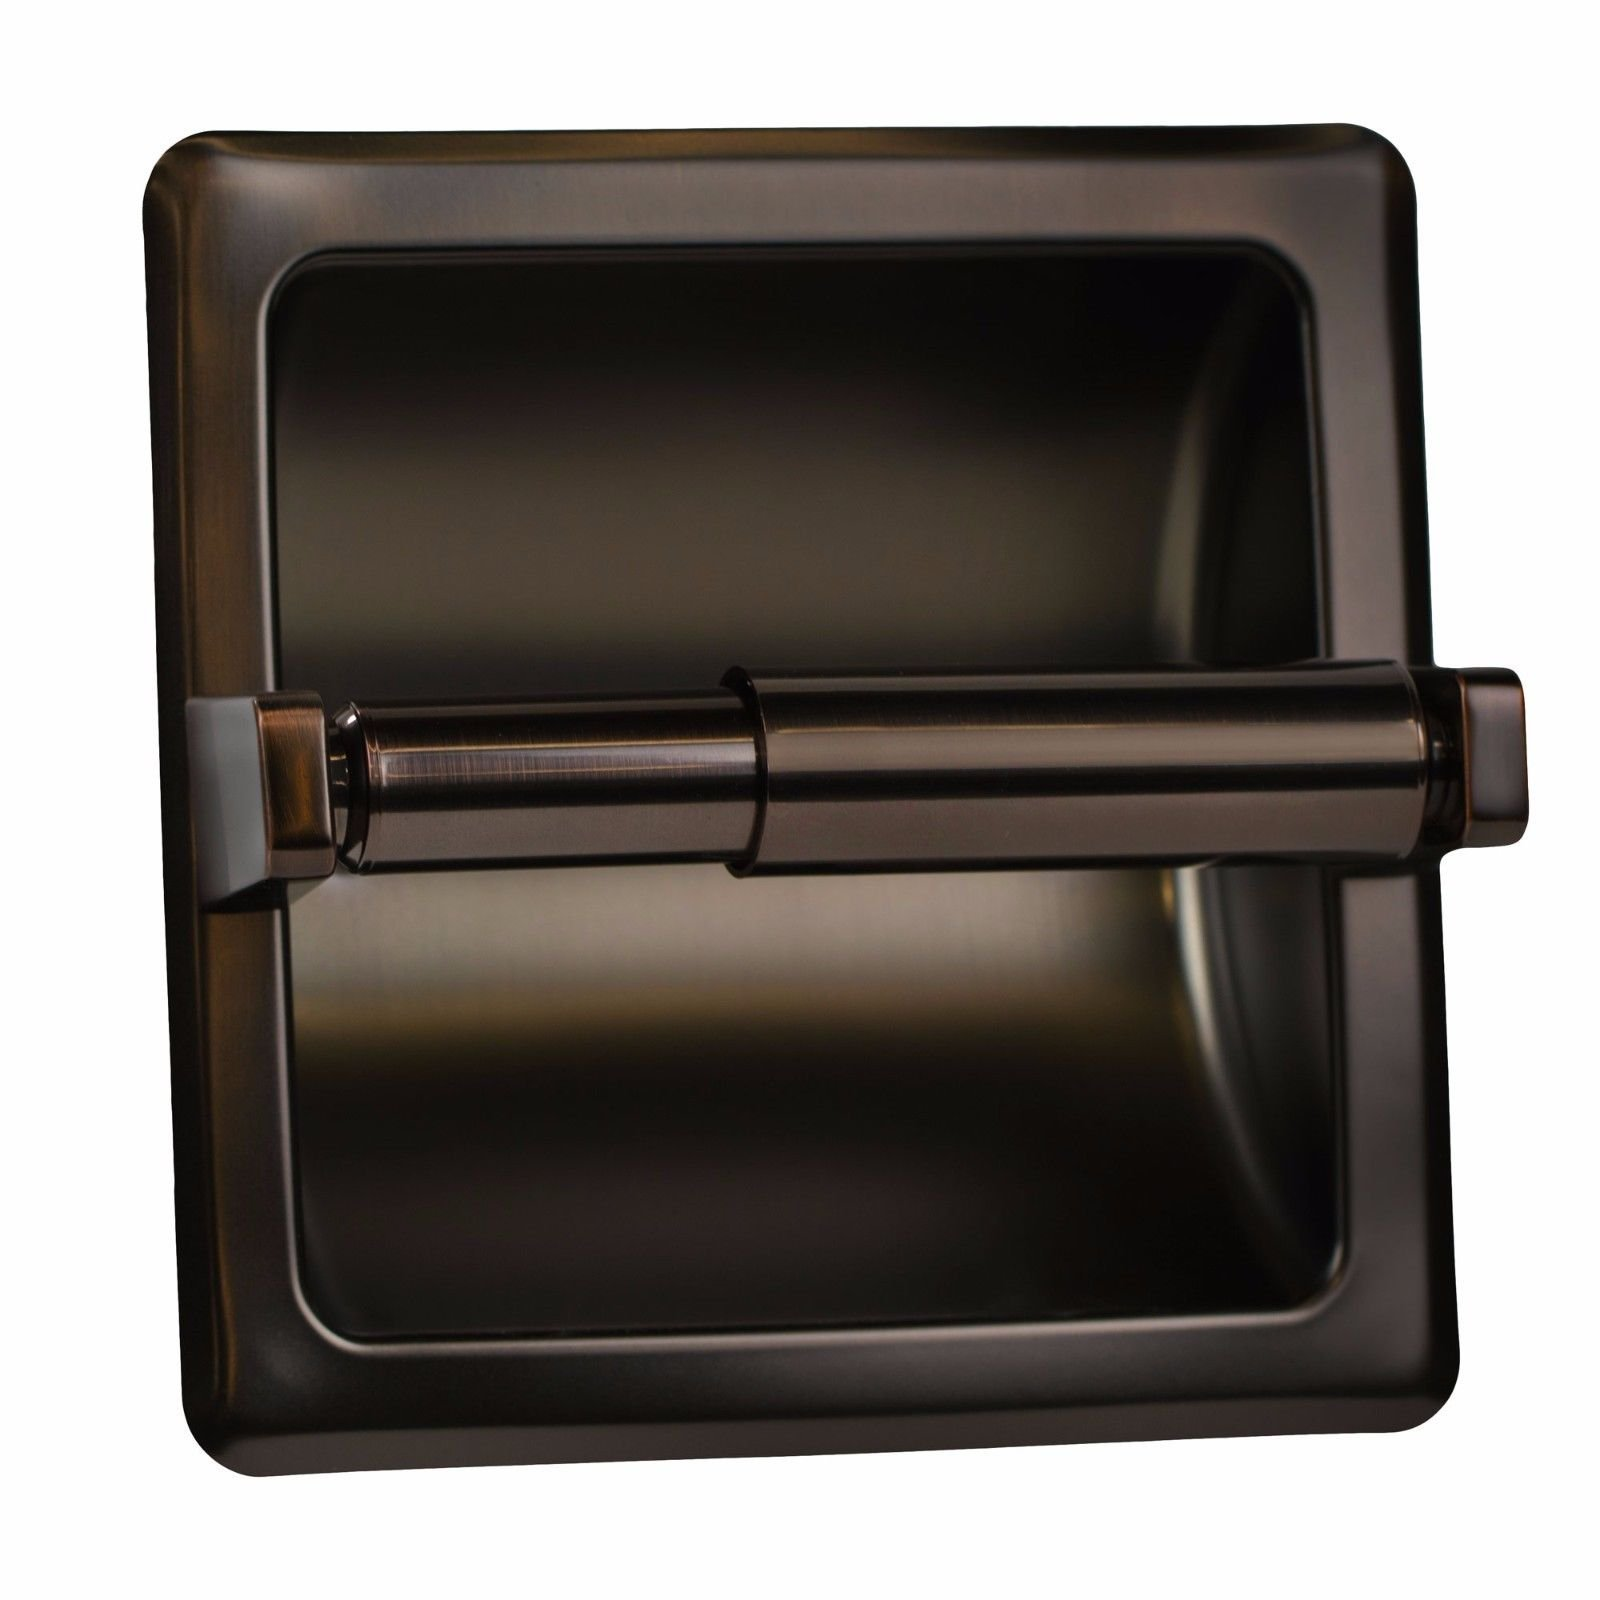 Modern Bronze Matching Recessed Oil Rubbed Stainless Steel Toilet Paper Holder Great For Your Home Ofiice Bathroom